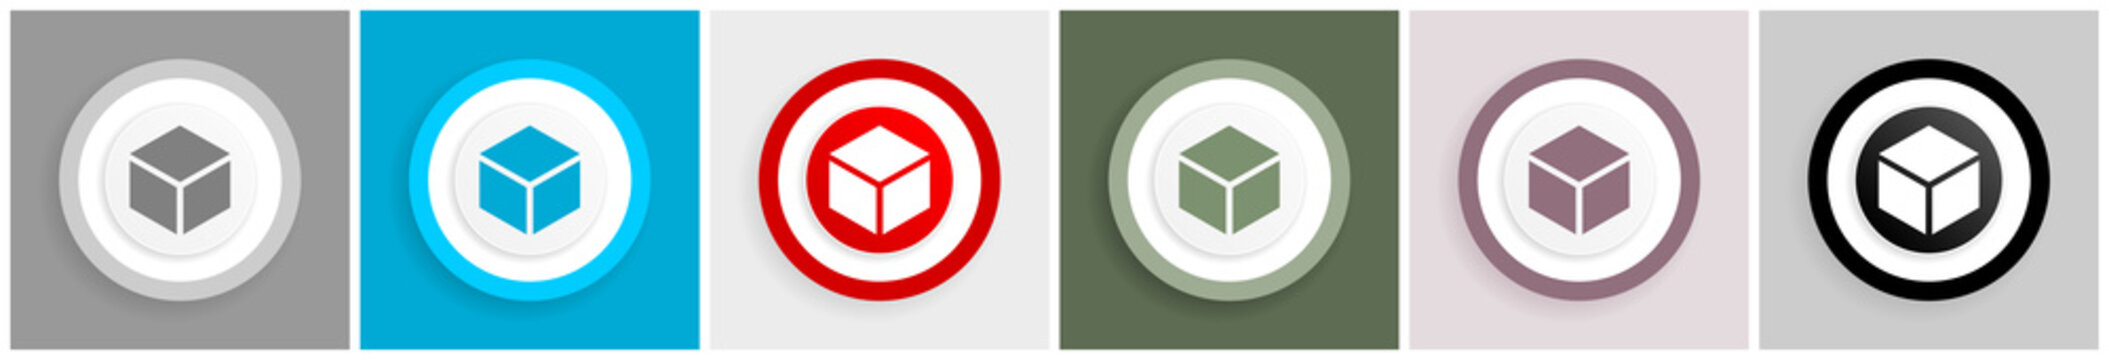 Box icon set, vector illustrations in 6 options for web design and mobile applications